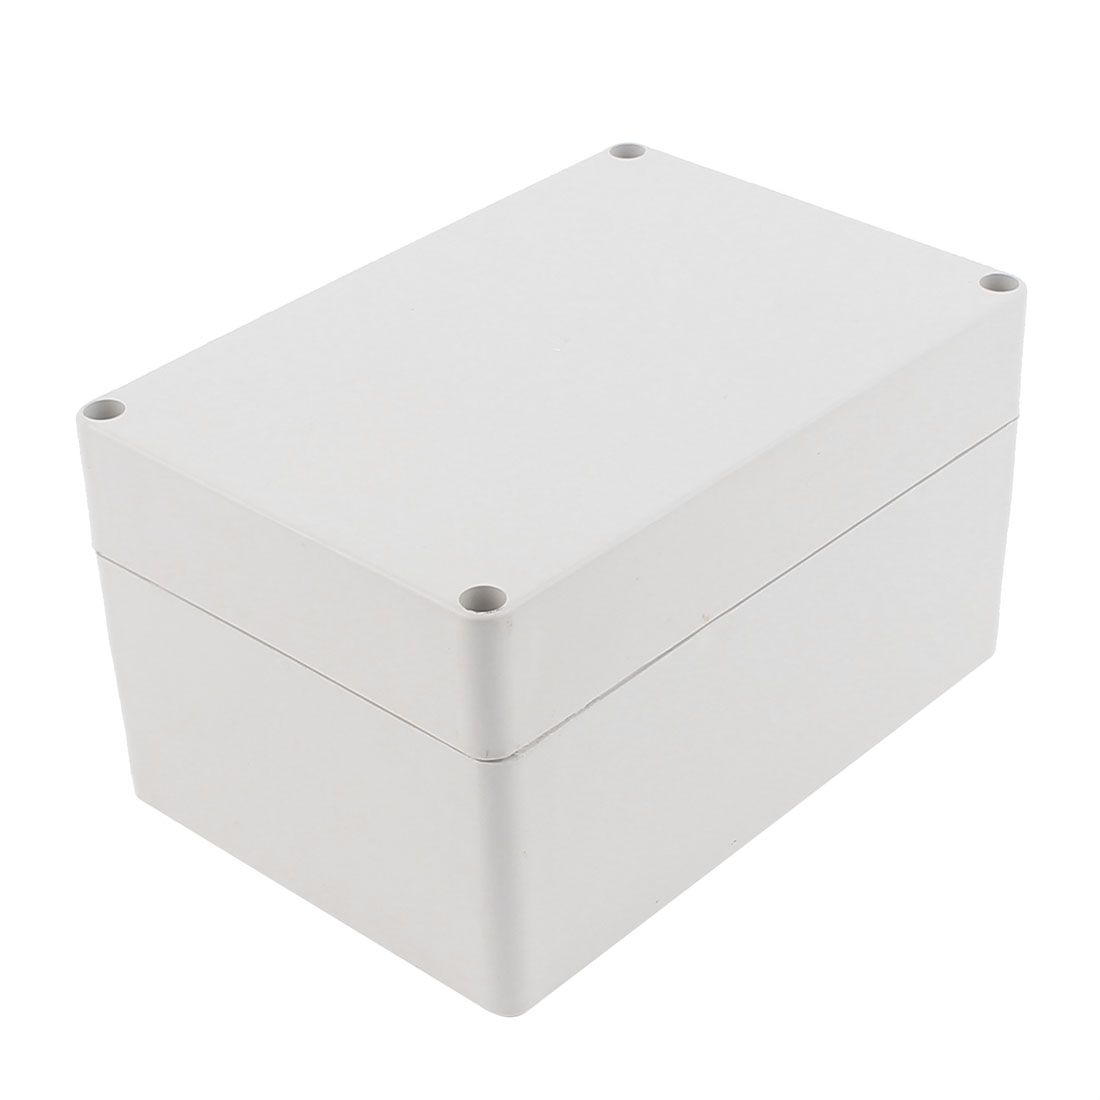 160 x 110 x 90mm Dustproof IP65 Junction Box Terminal Connecting Box Enclosure